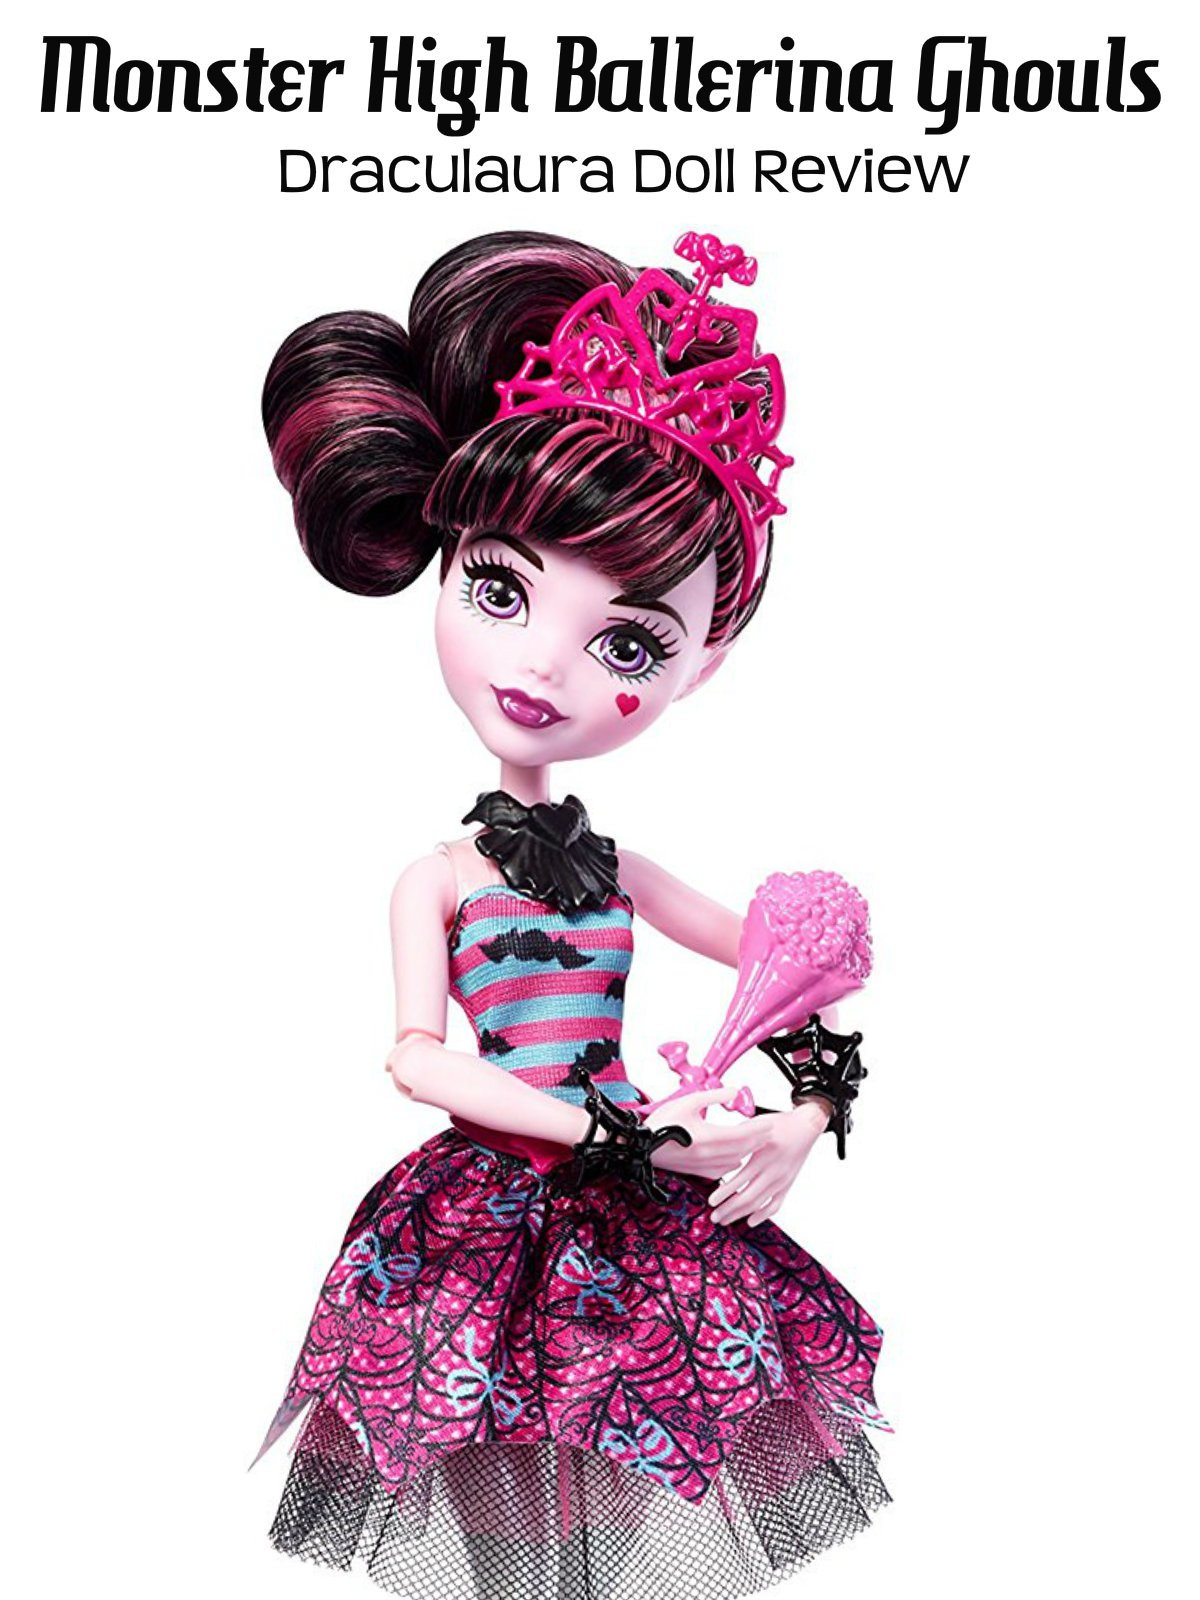 Review: Monster High Ballerina Ghouls Draculaura Doll Review